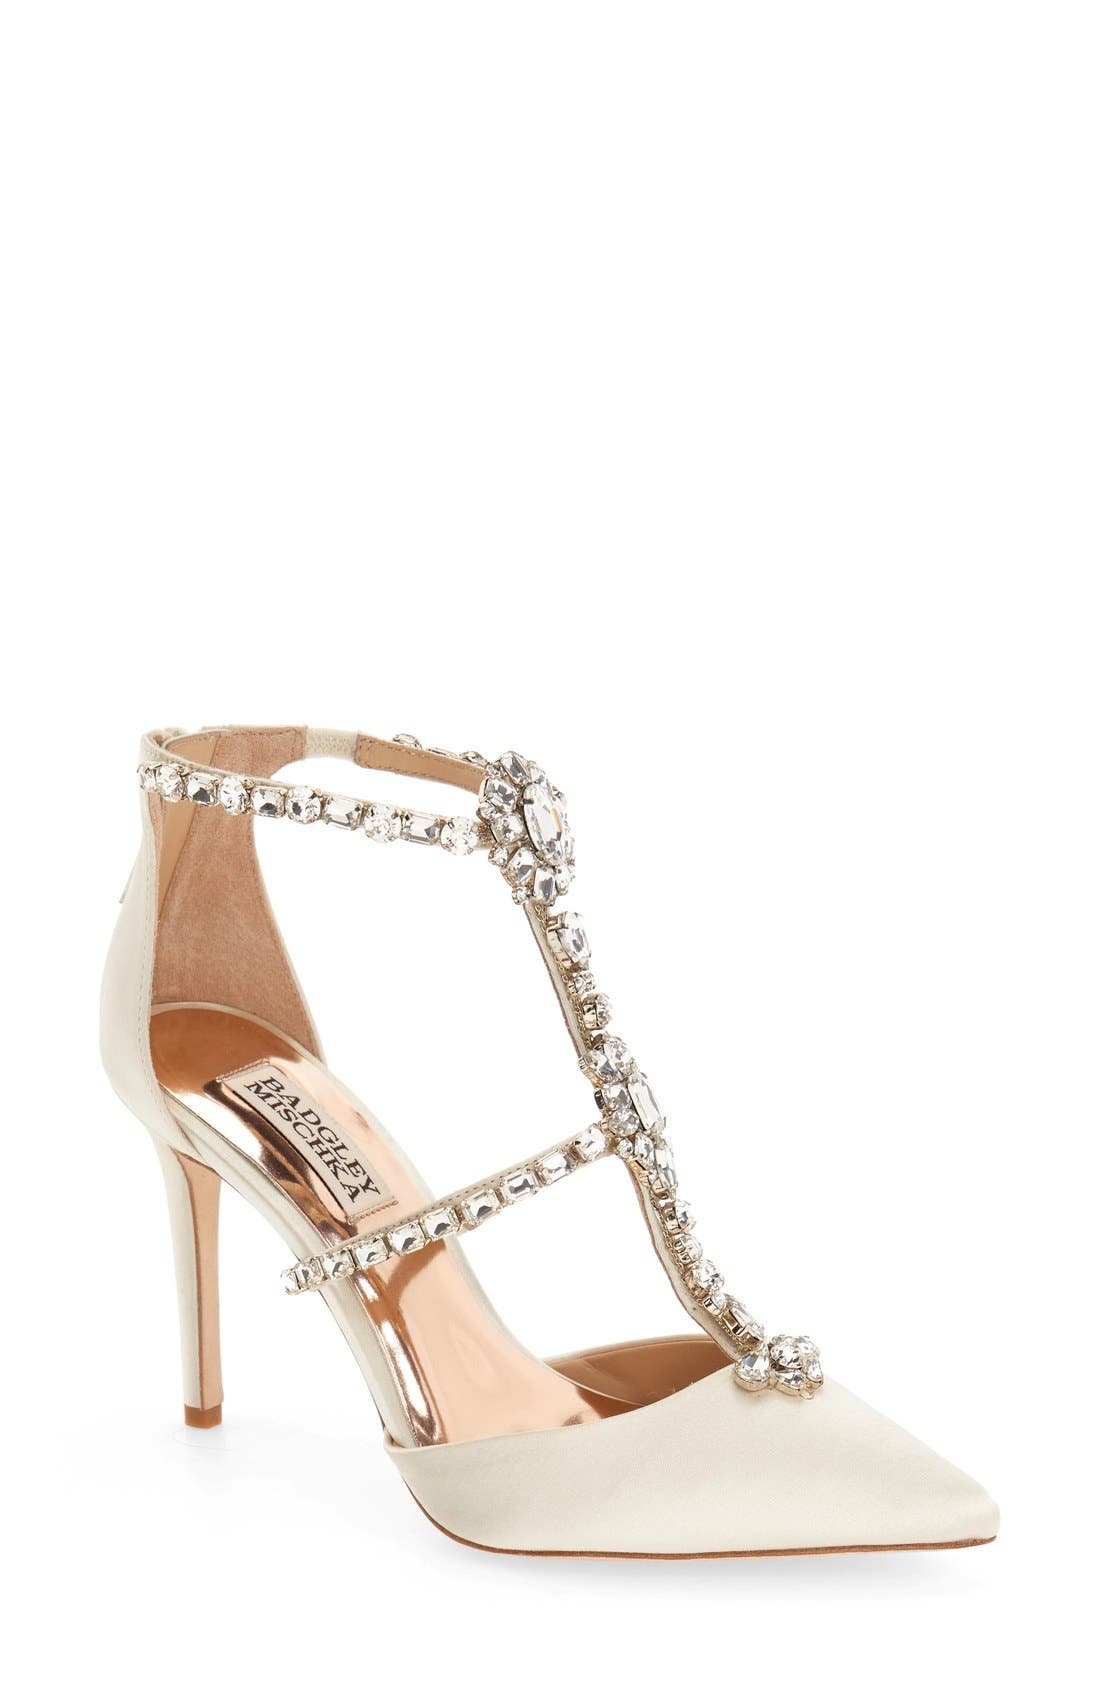 Main Image - Badgley Mischka 'Decker' Crystal Embellished T-Strap Pump (Women)